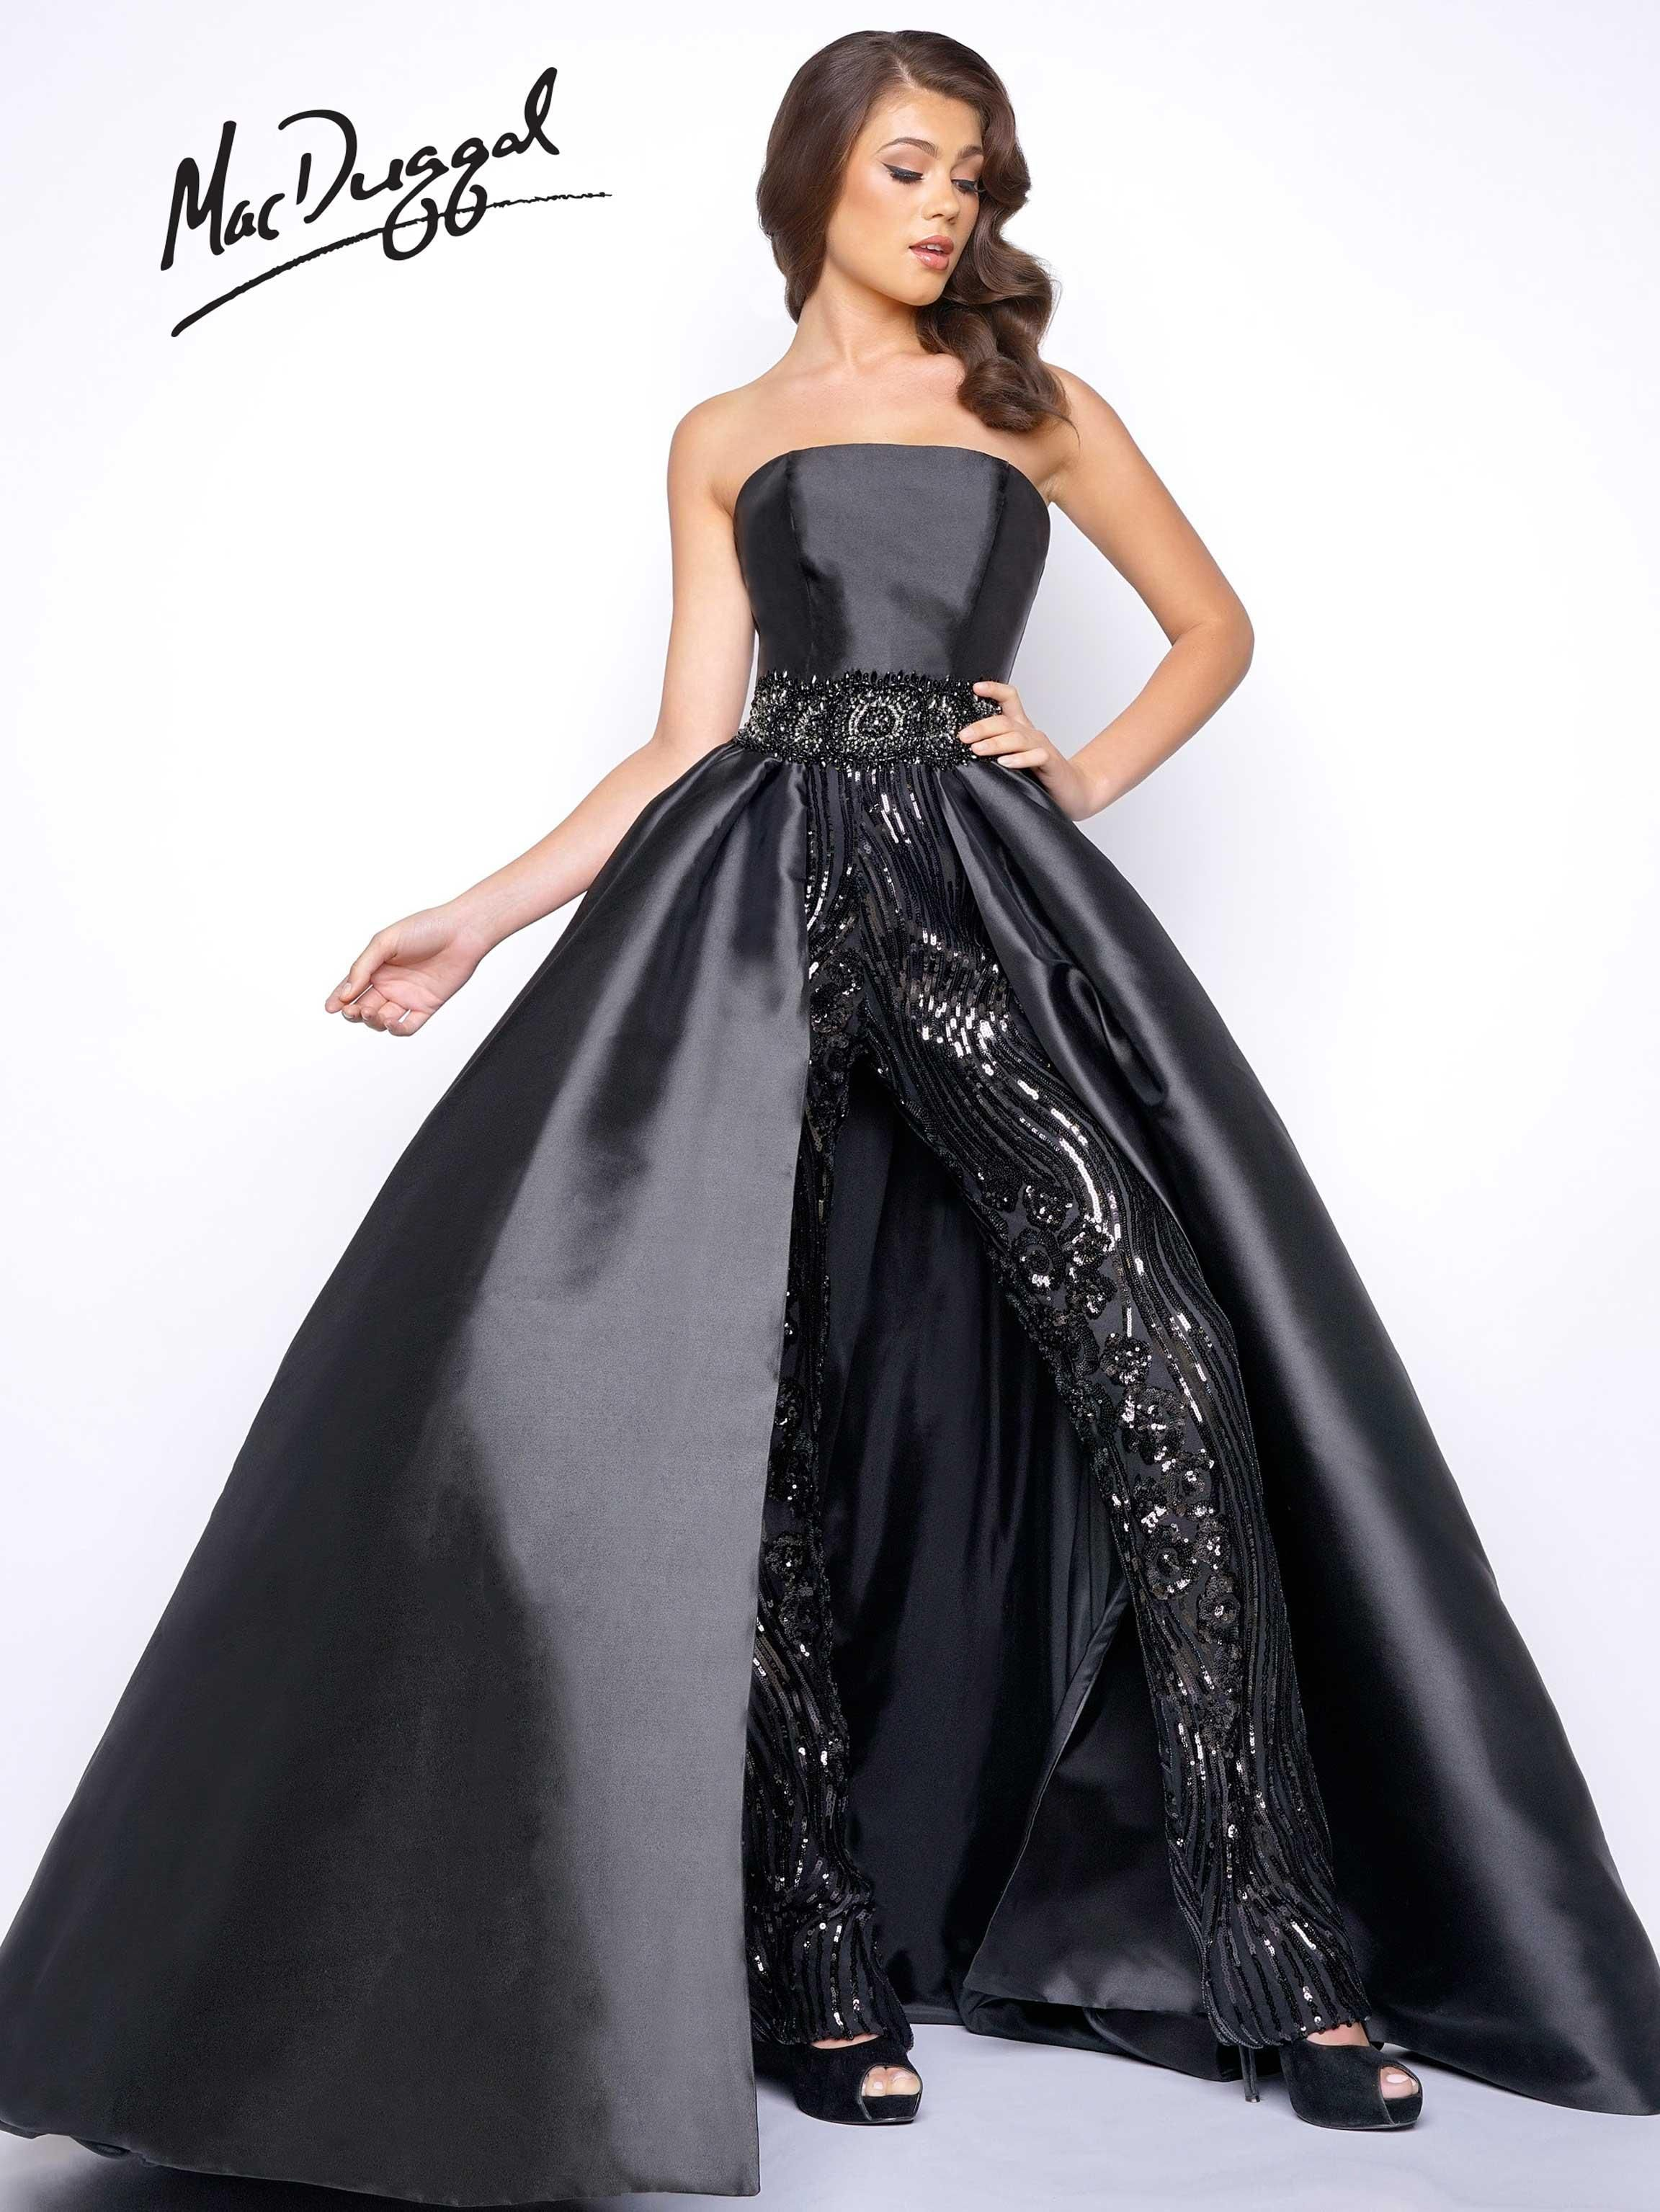 eb8c5c109e3 Mac Duggal Prom and Pageant black pants